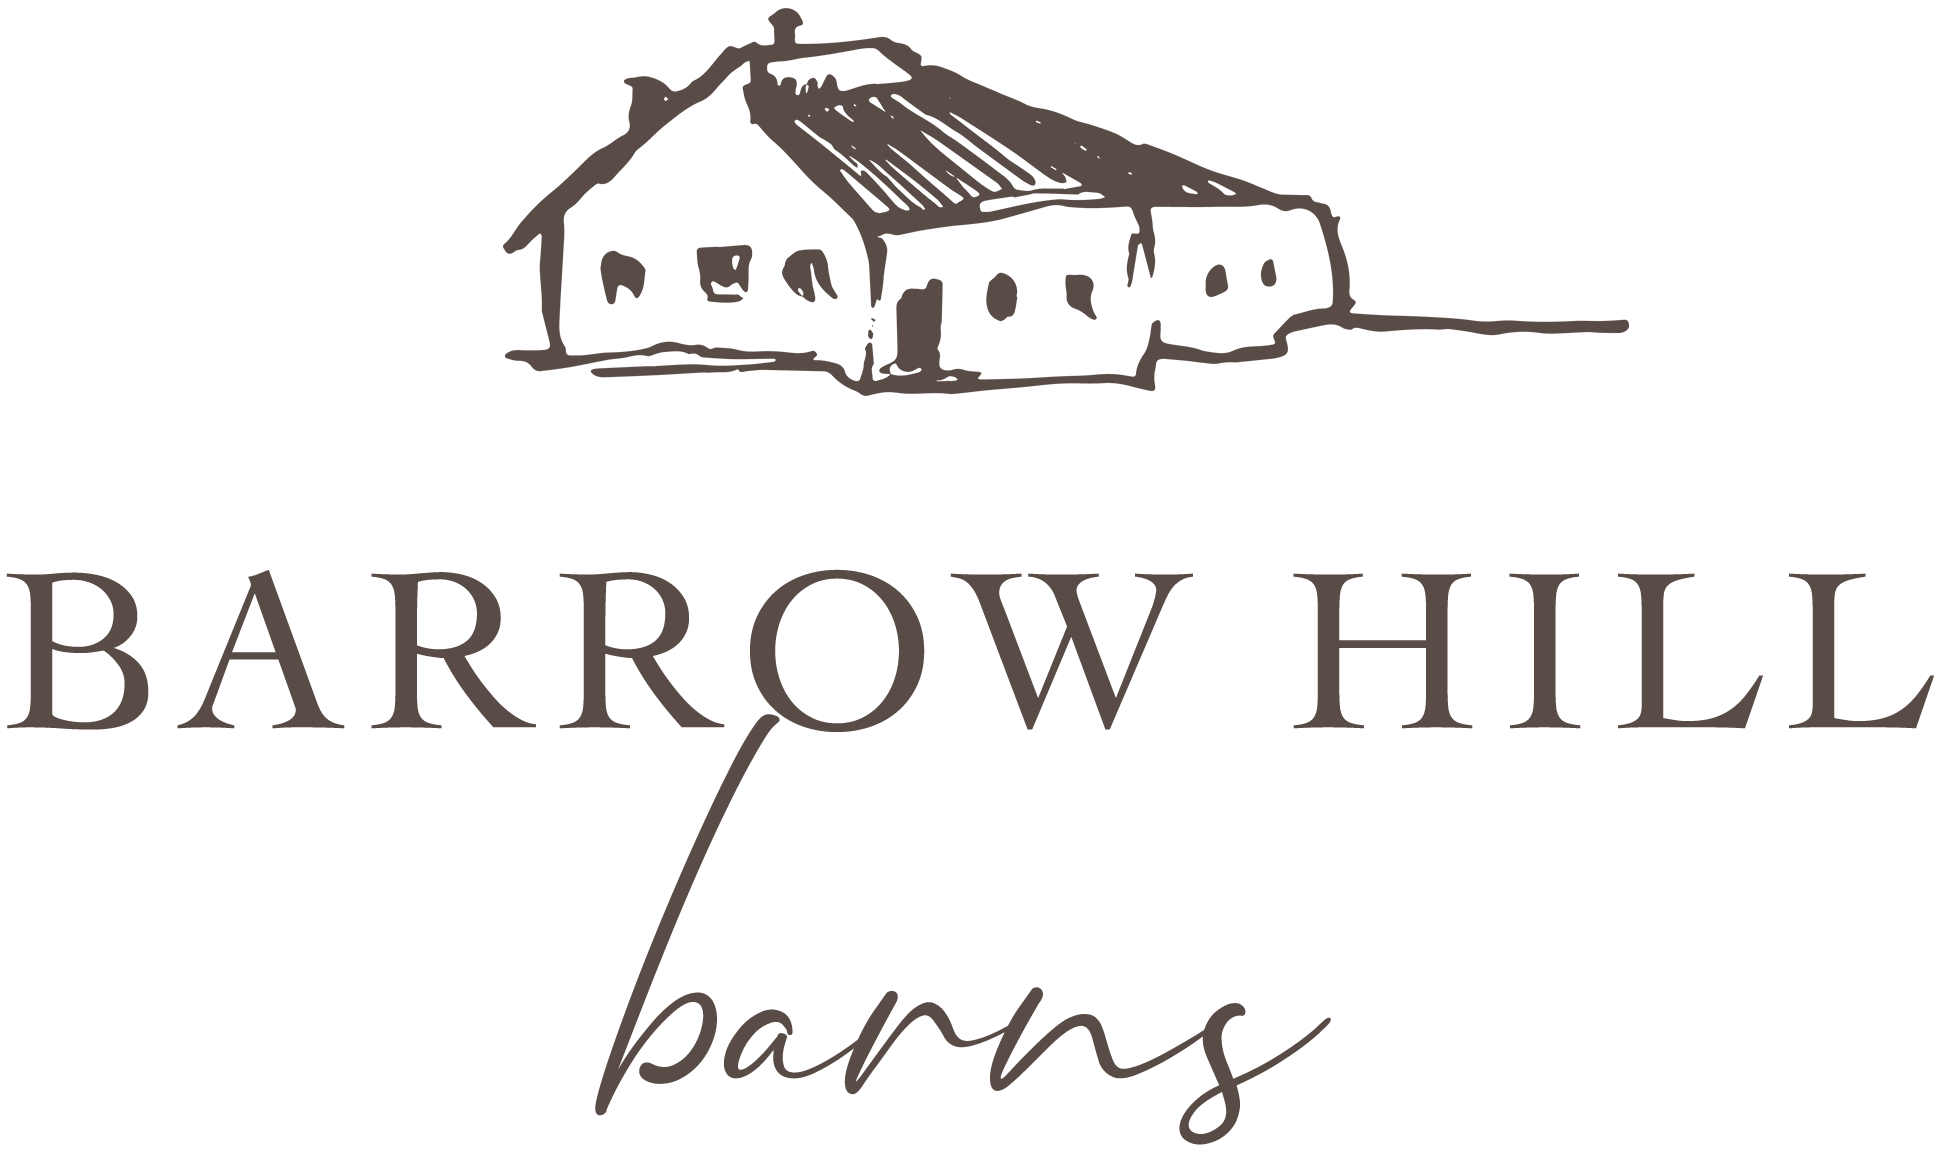 Barrow Hill Barns